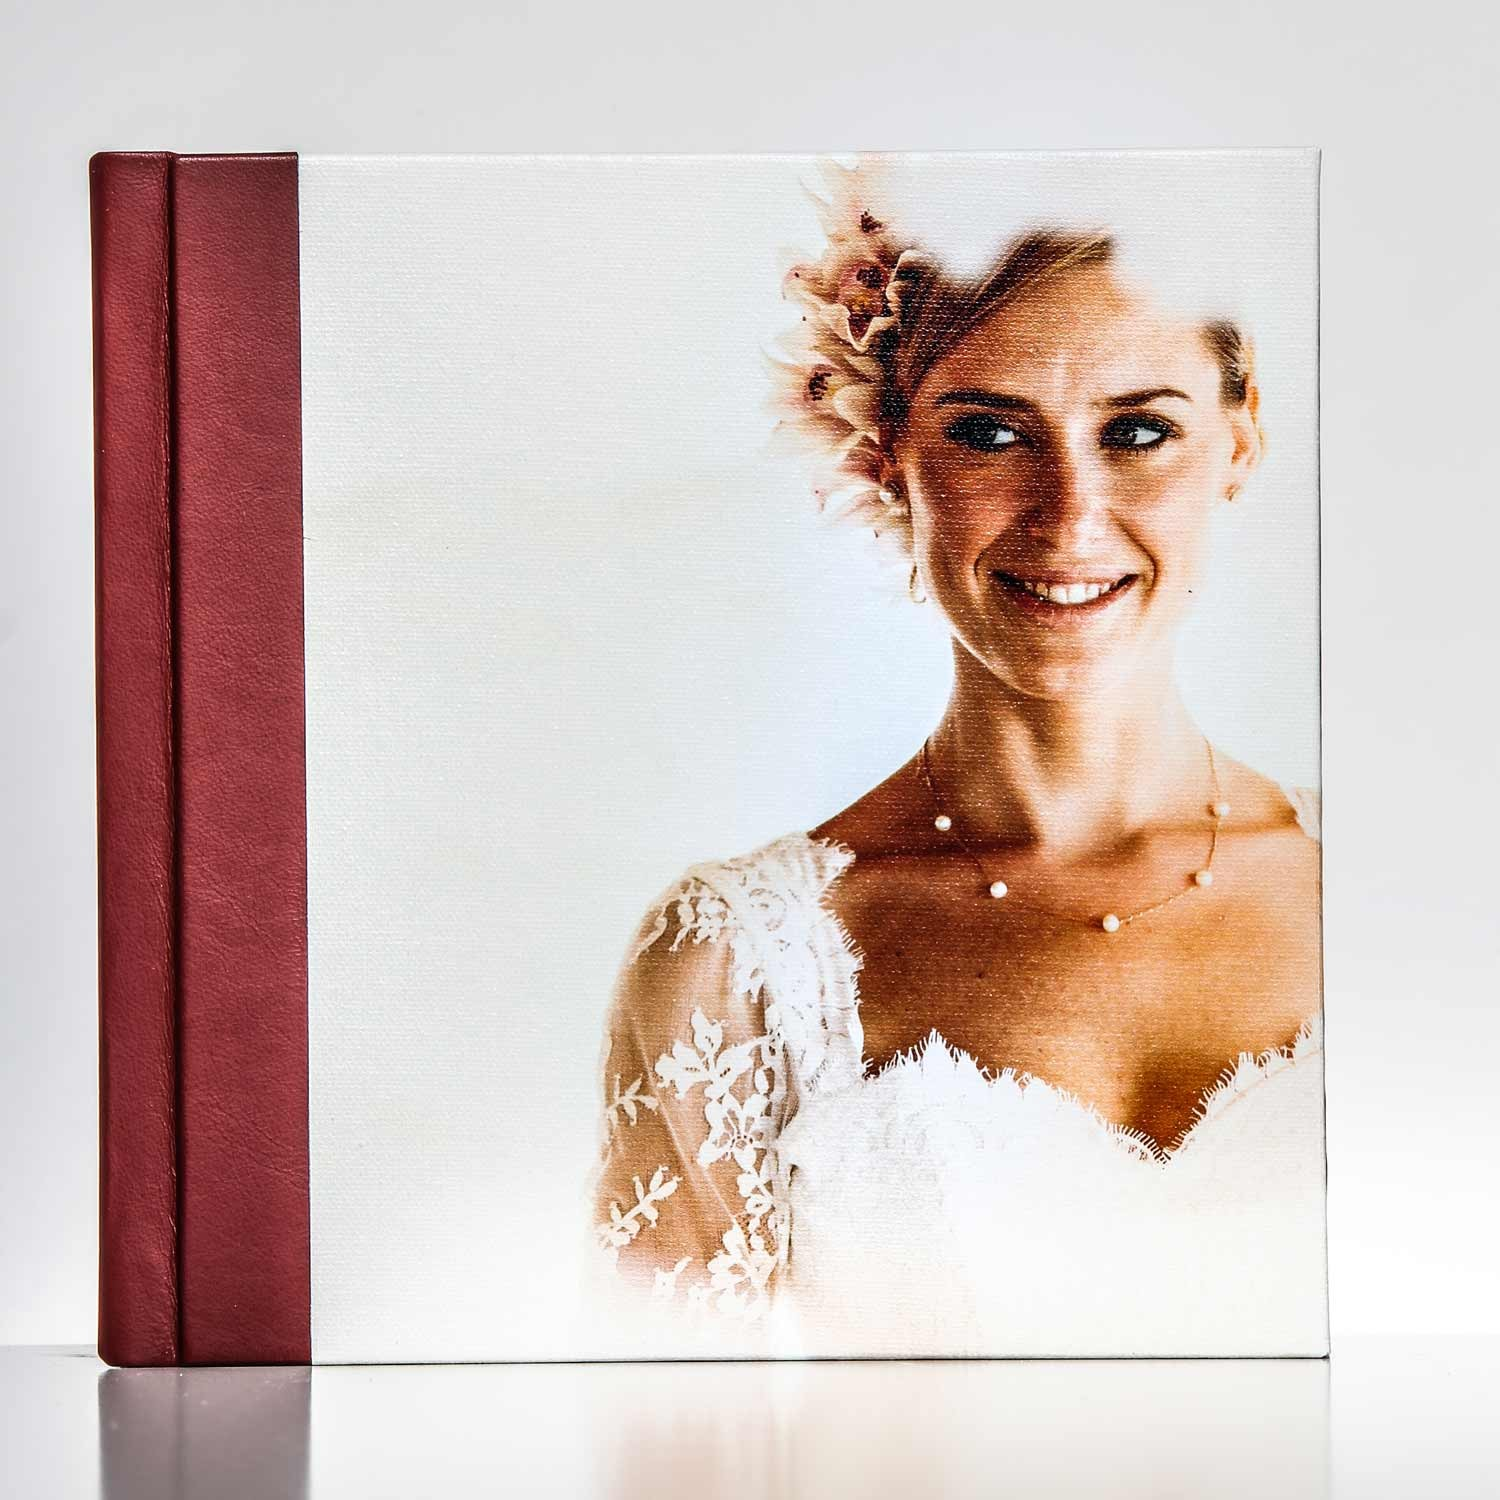 Silverbook 20x20cm with Canvas